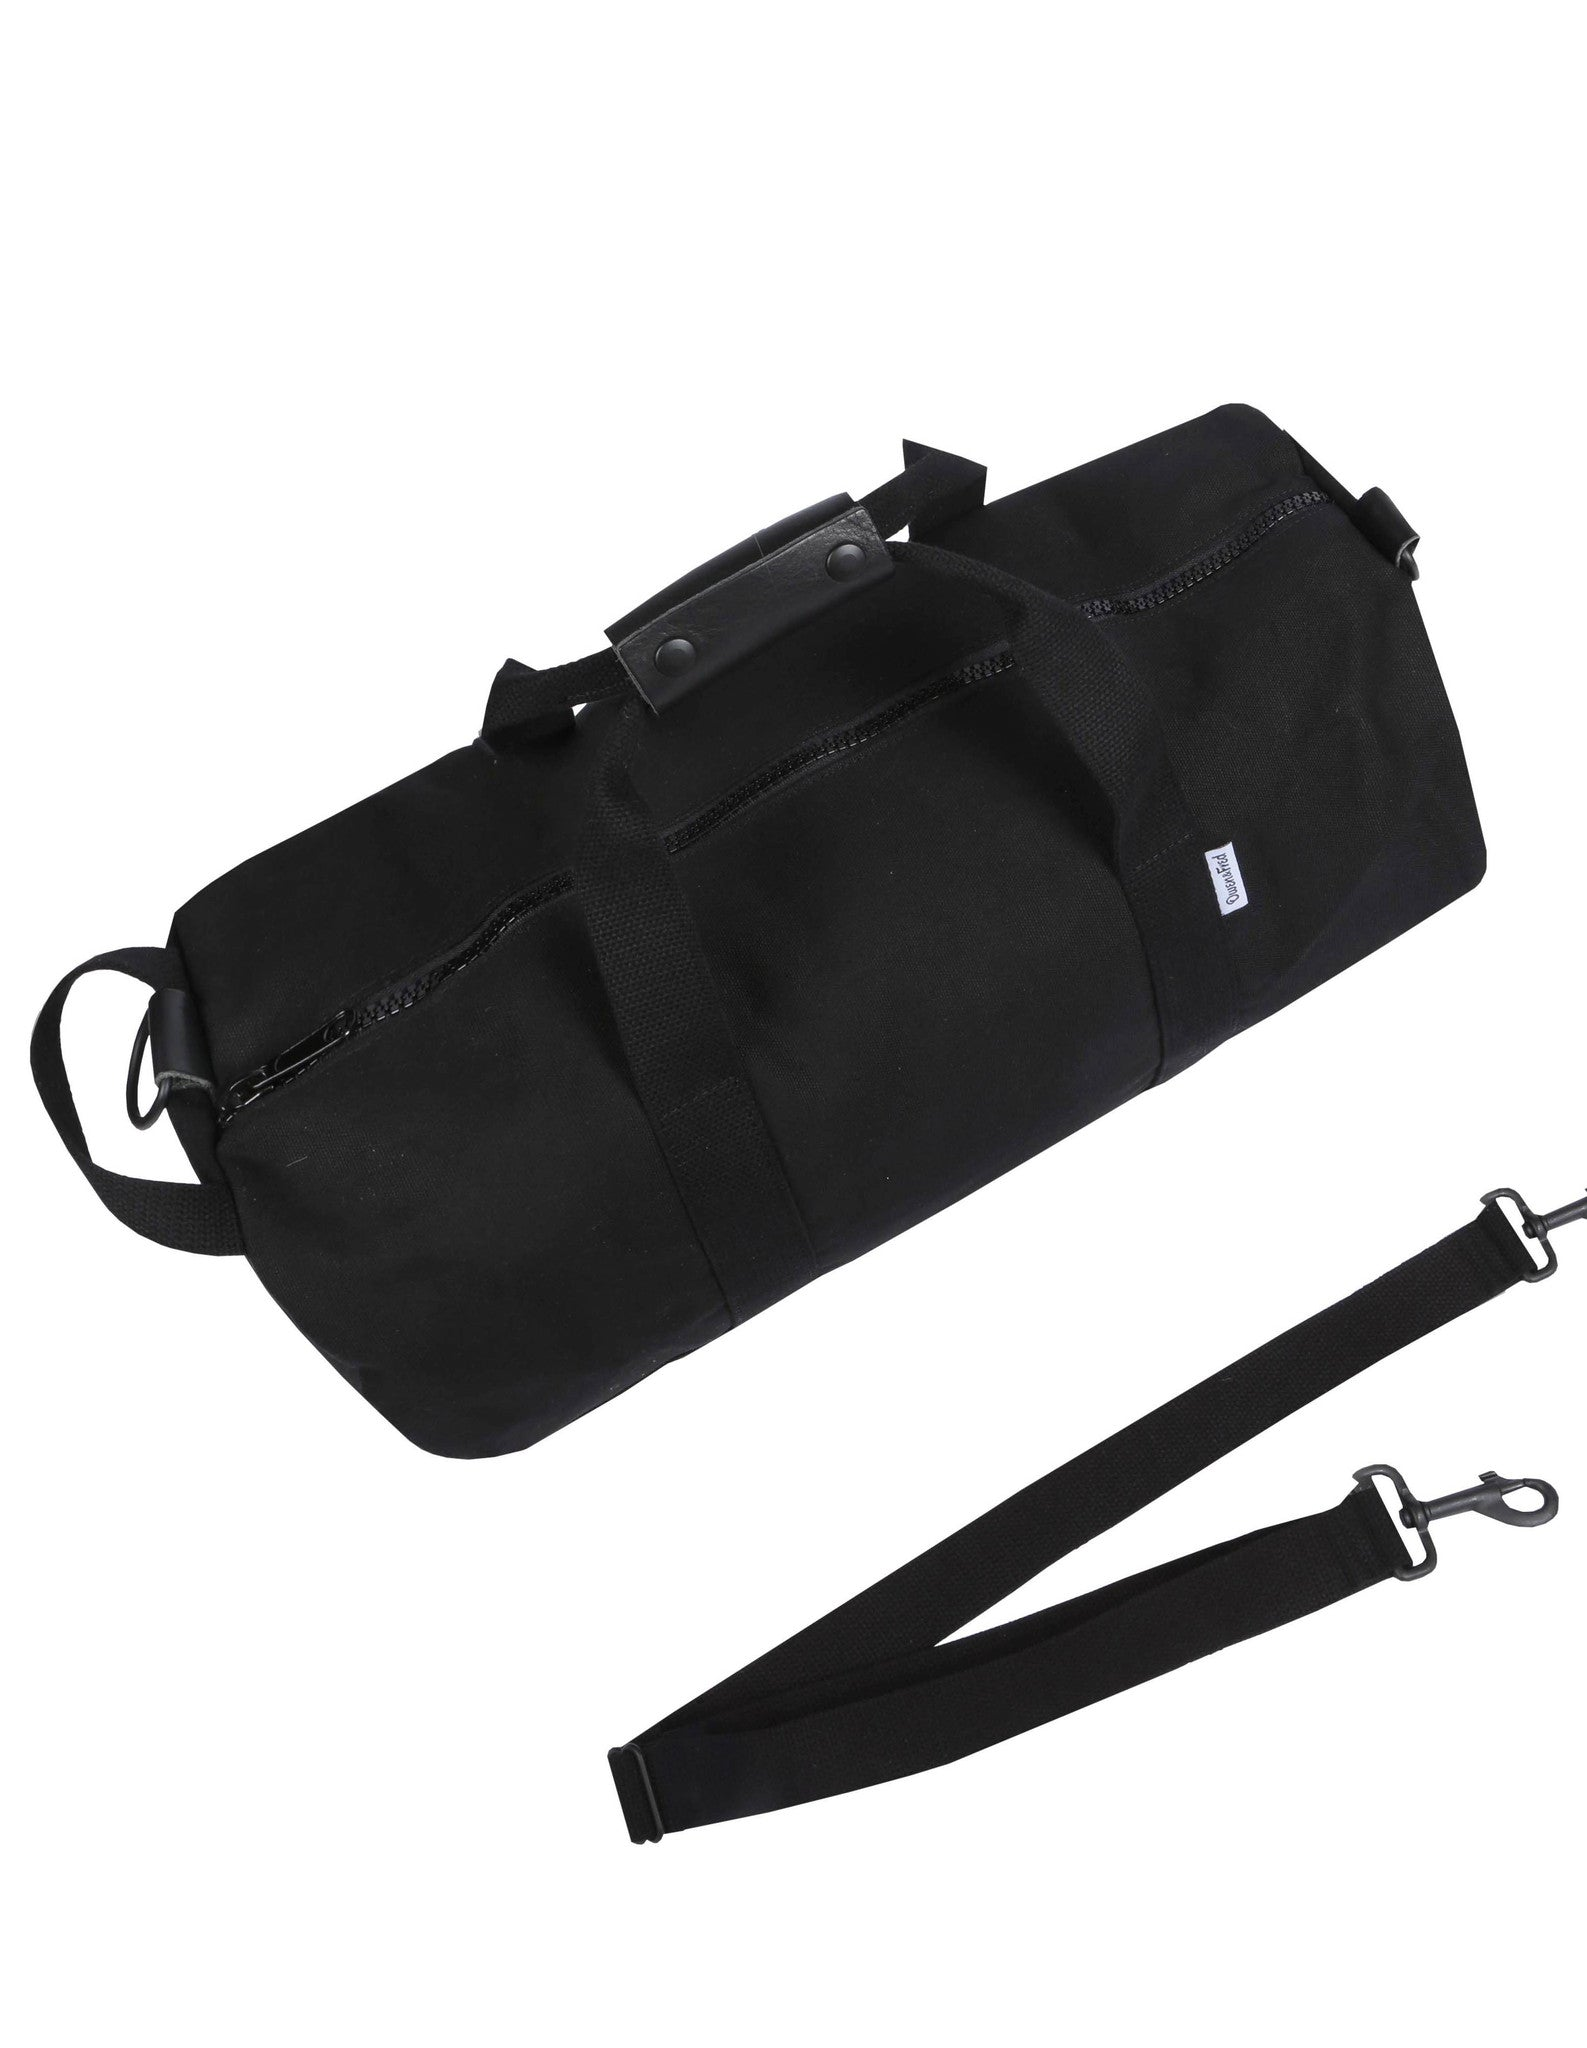 Top of of Black Work Hard, Play Hard canvas duffel bag by Owen & Fred